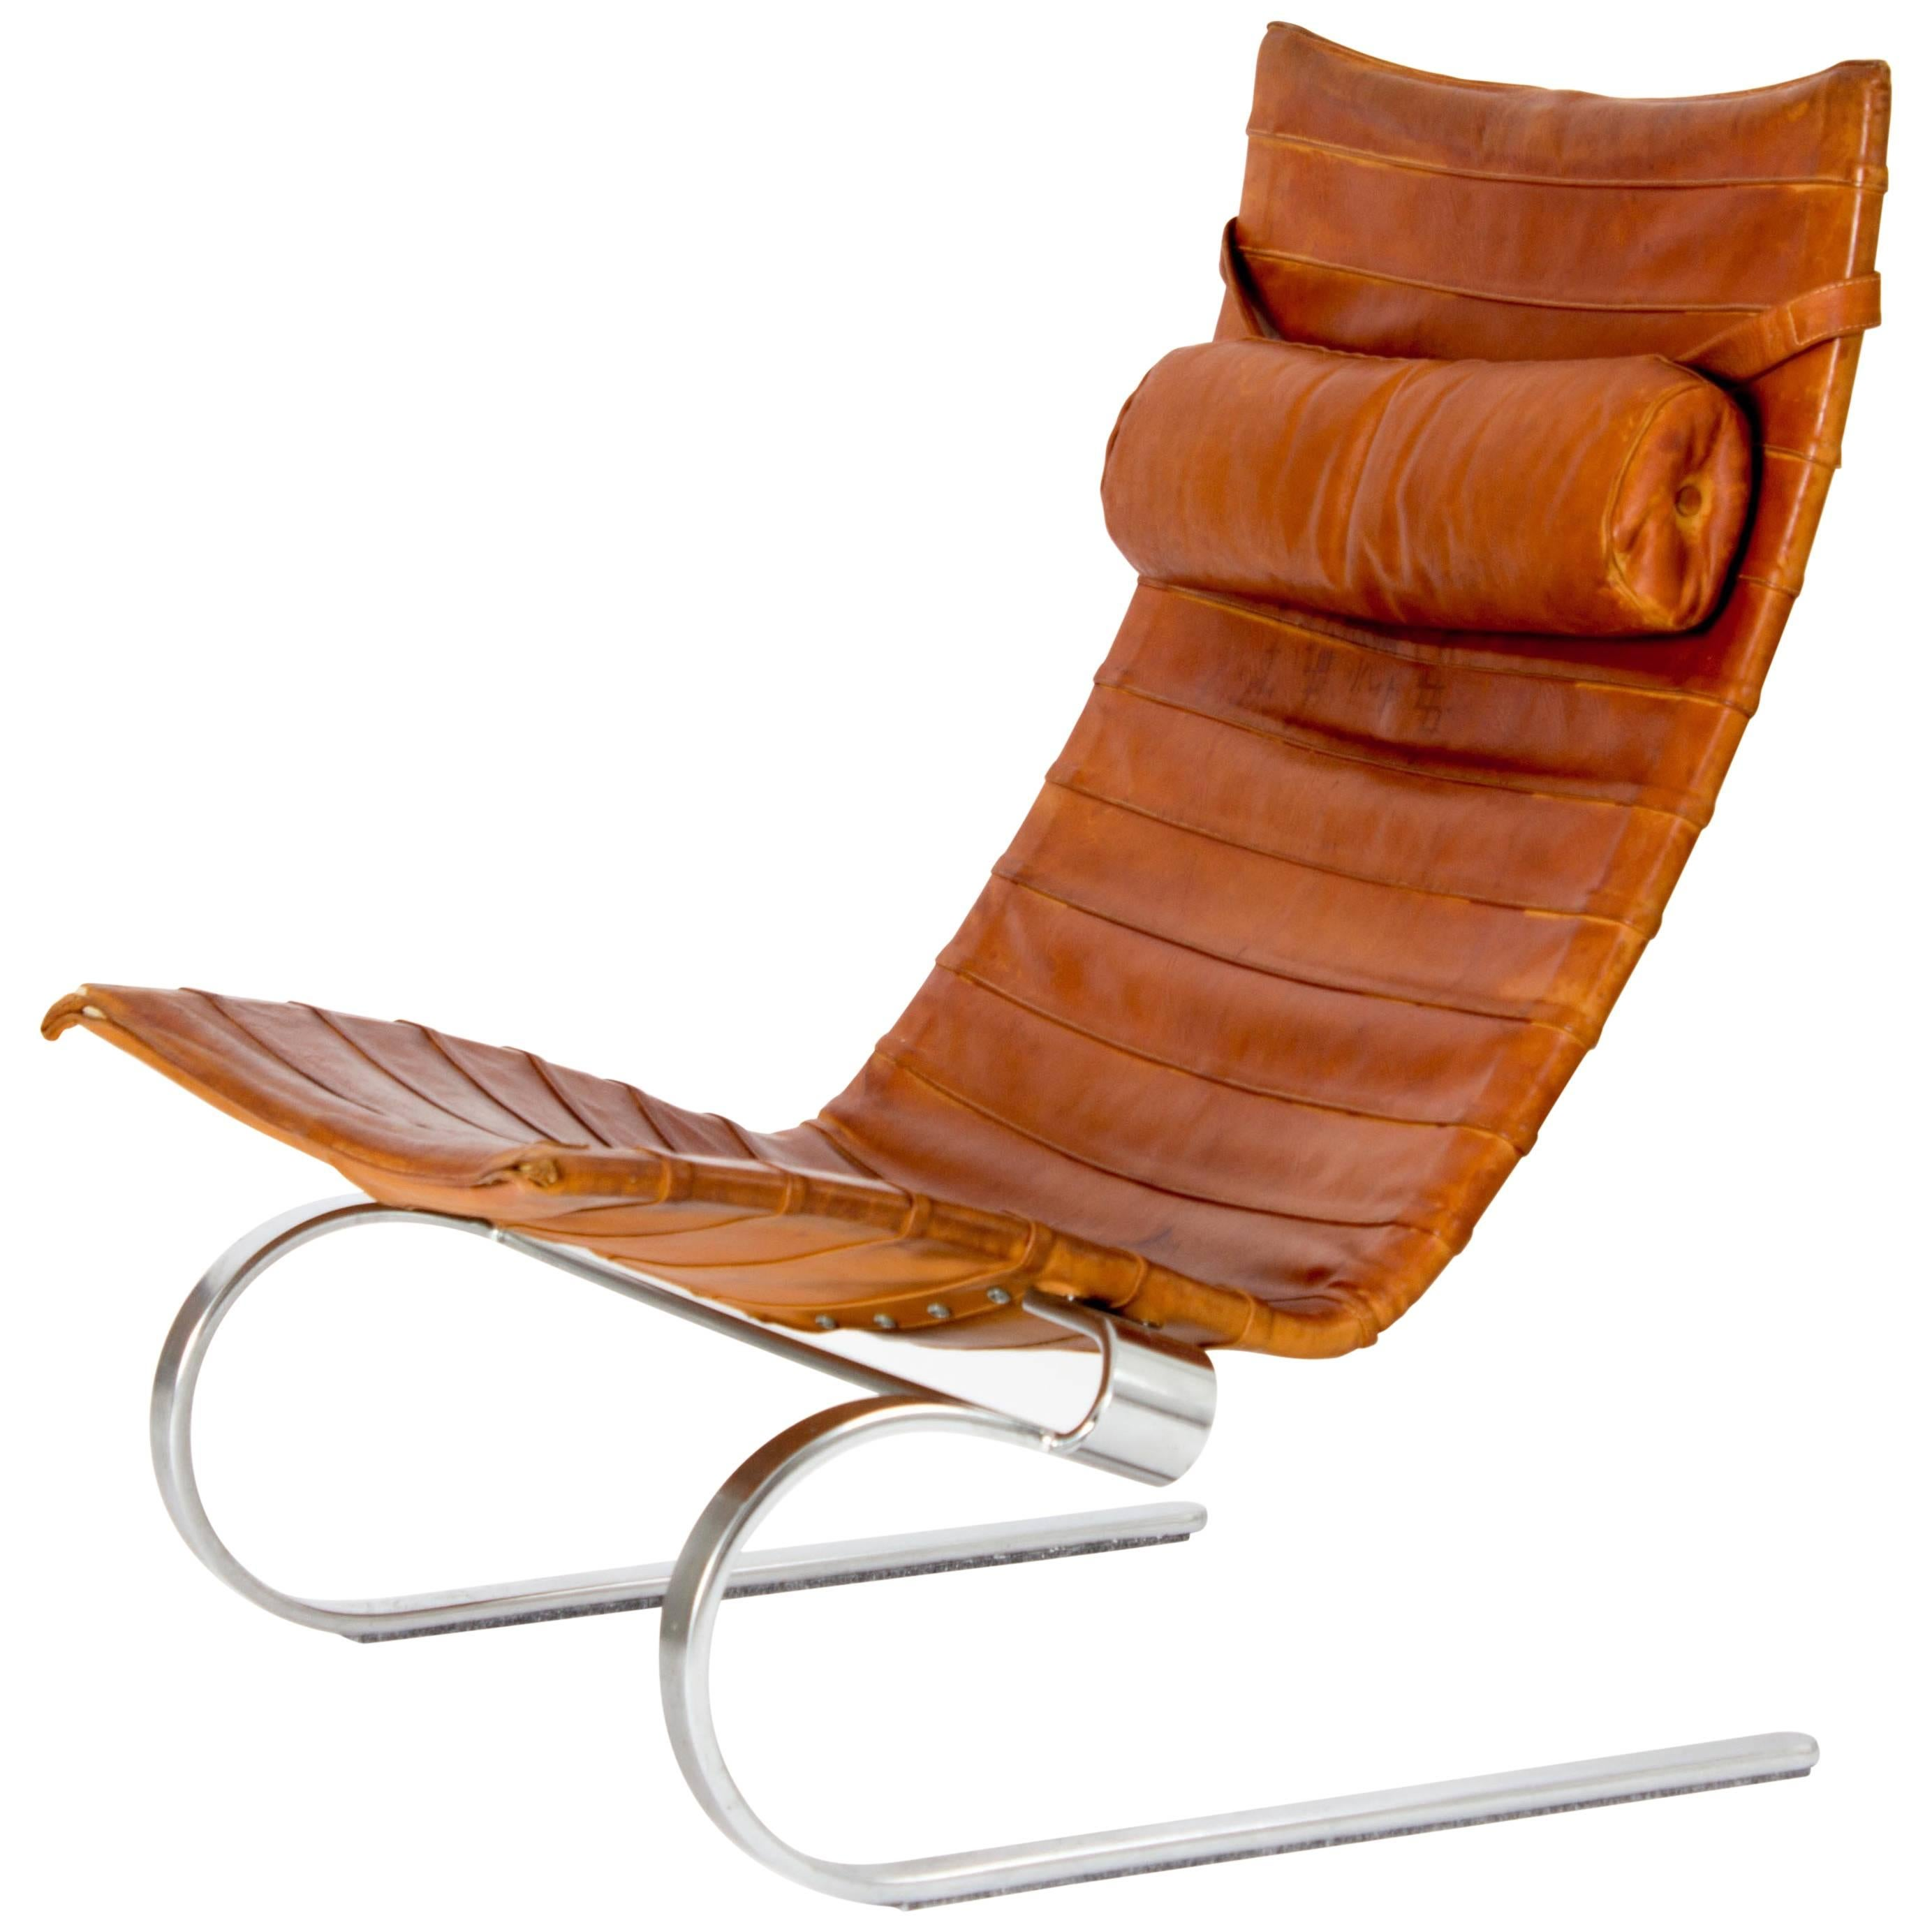 Exceptionnel Early Cognac PK20 Lounge Chair By Poul Kjaerholm, Denmark, 1960 For Sale